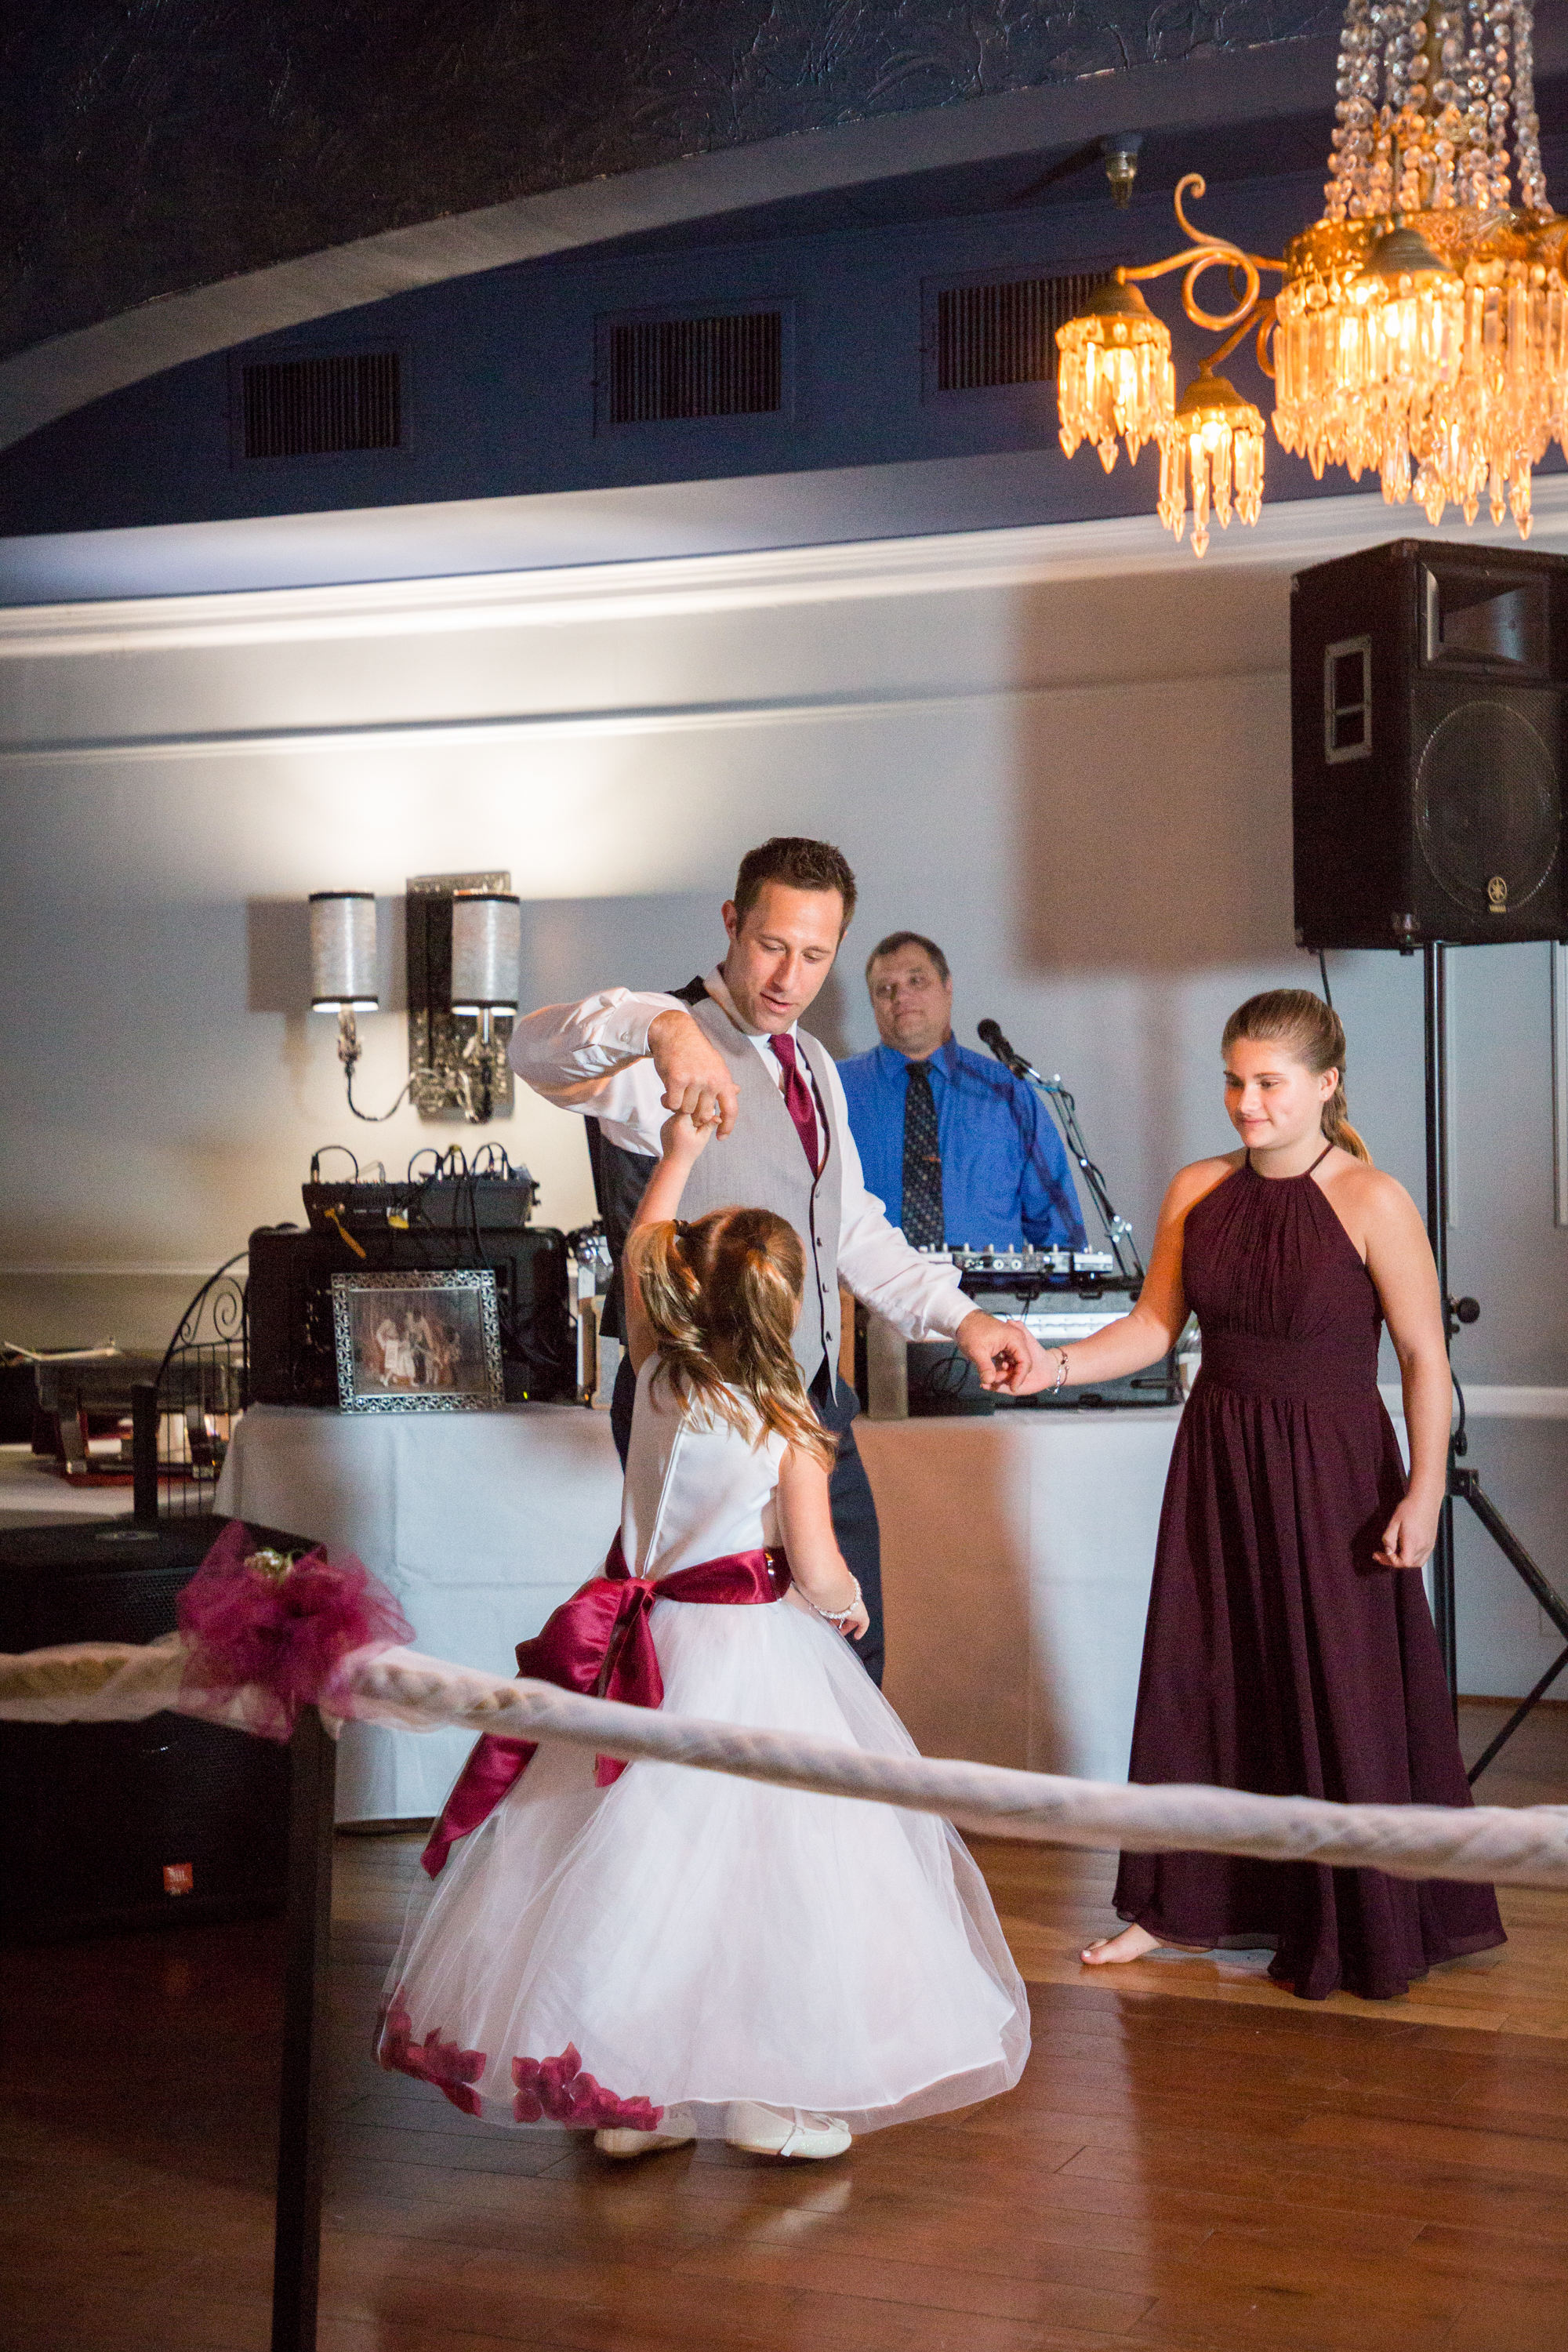 Jenna and Bill and their families and friends dance the night away at Ocean 13 wedding venue in Ocean City.